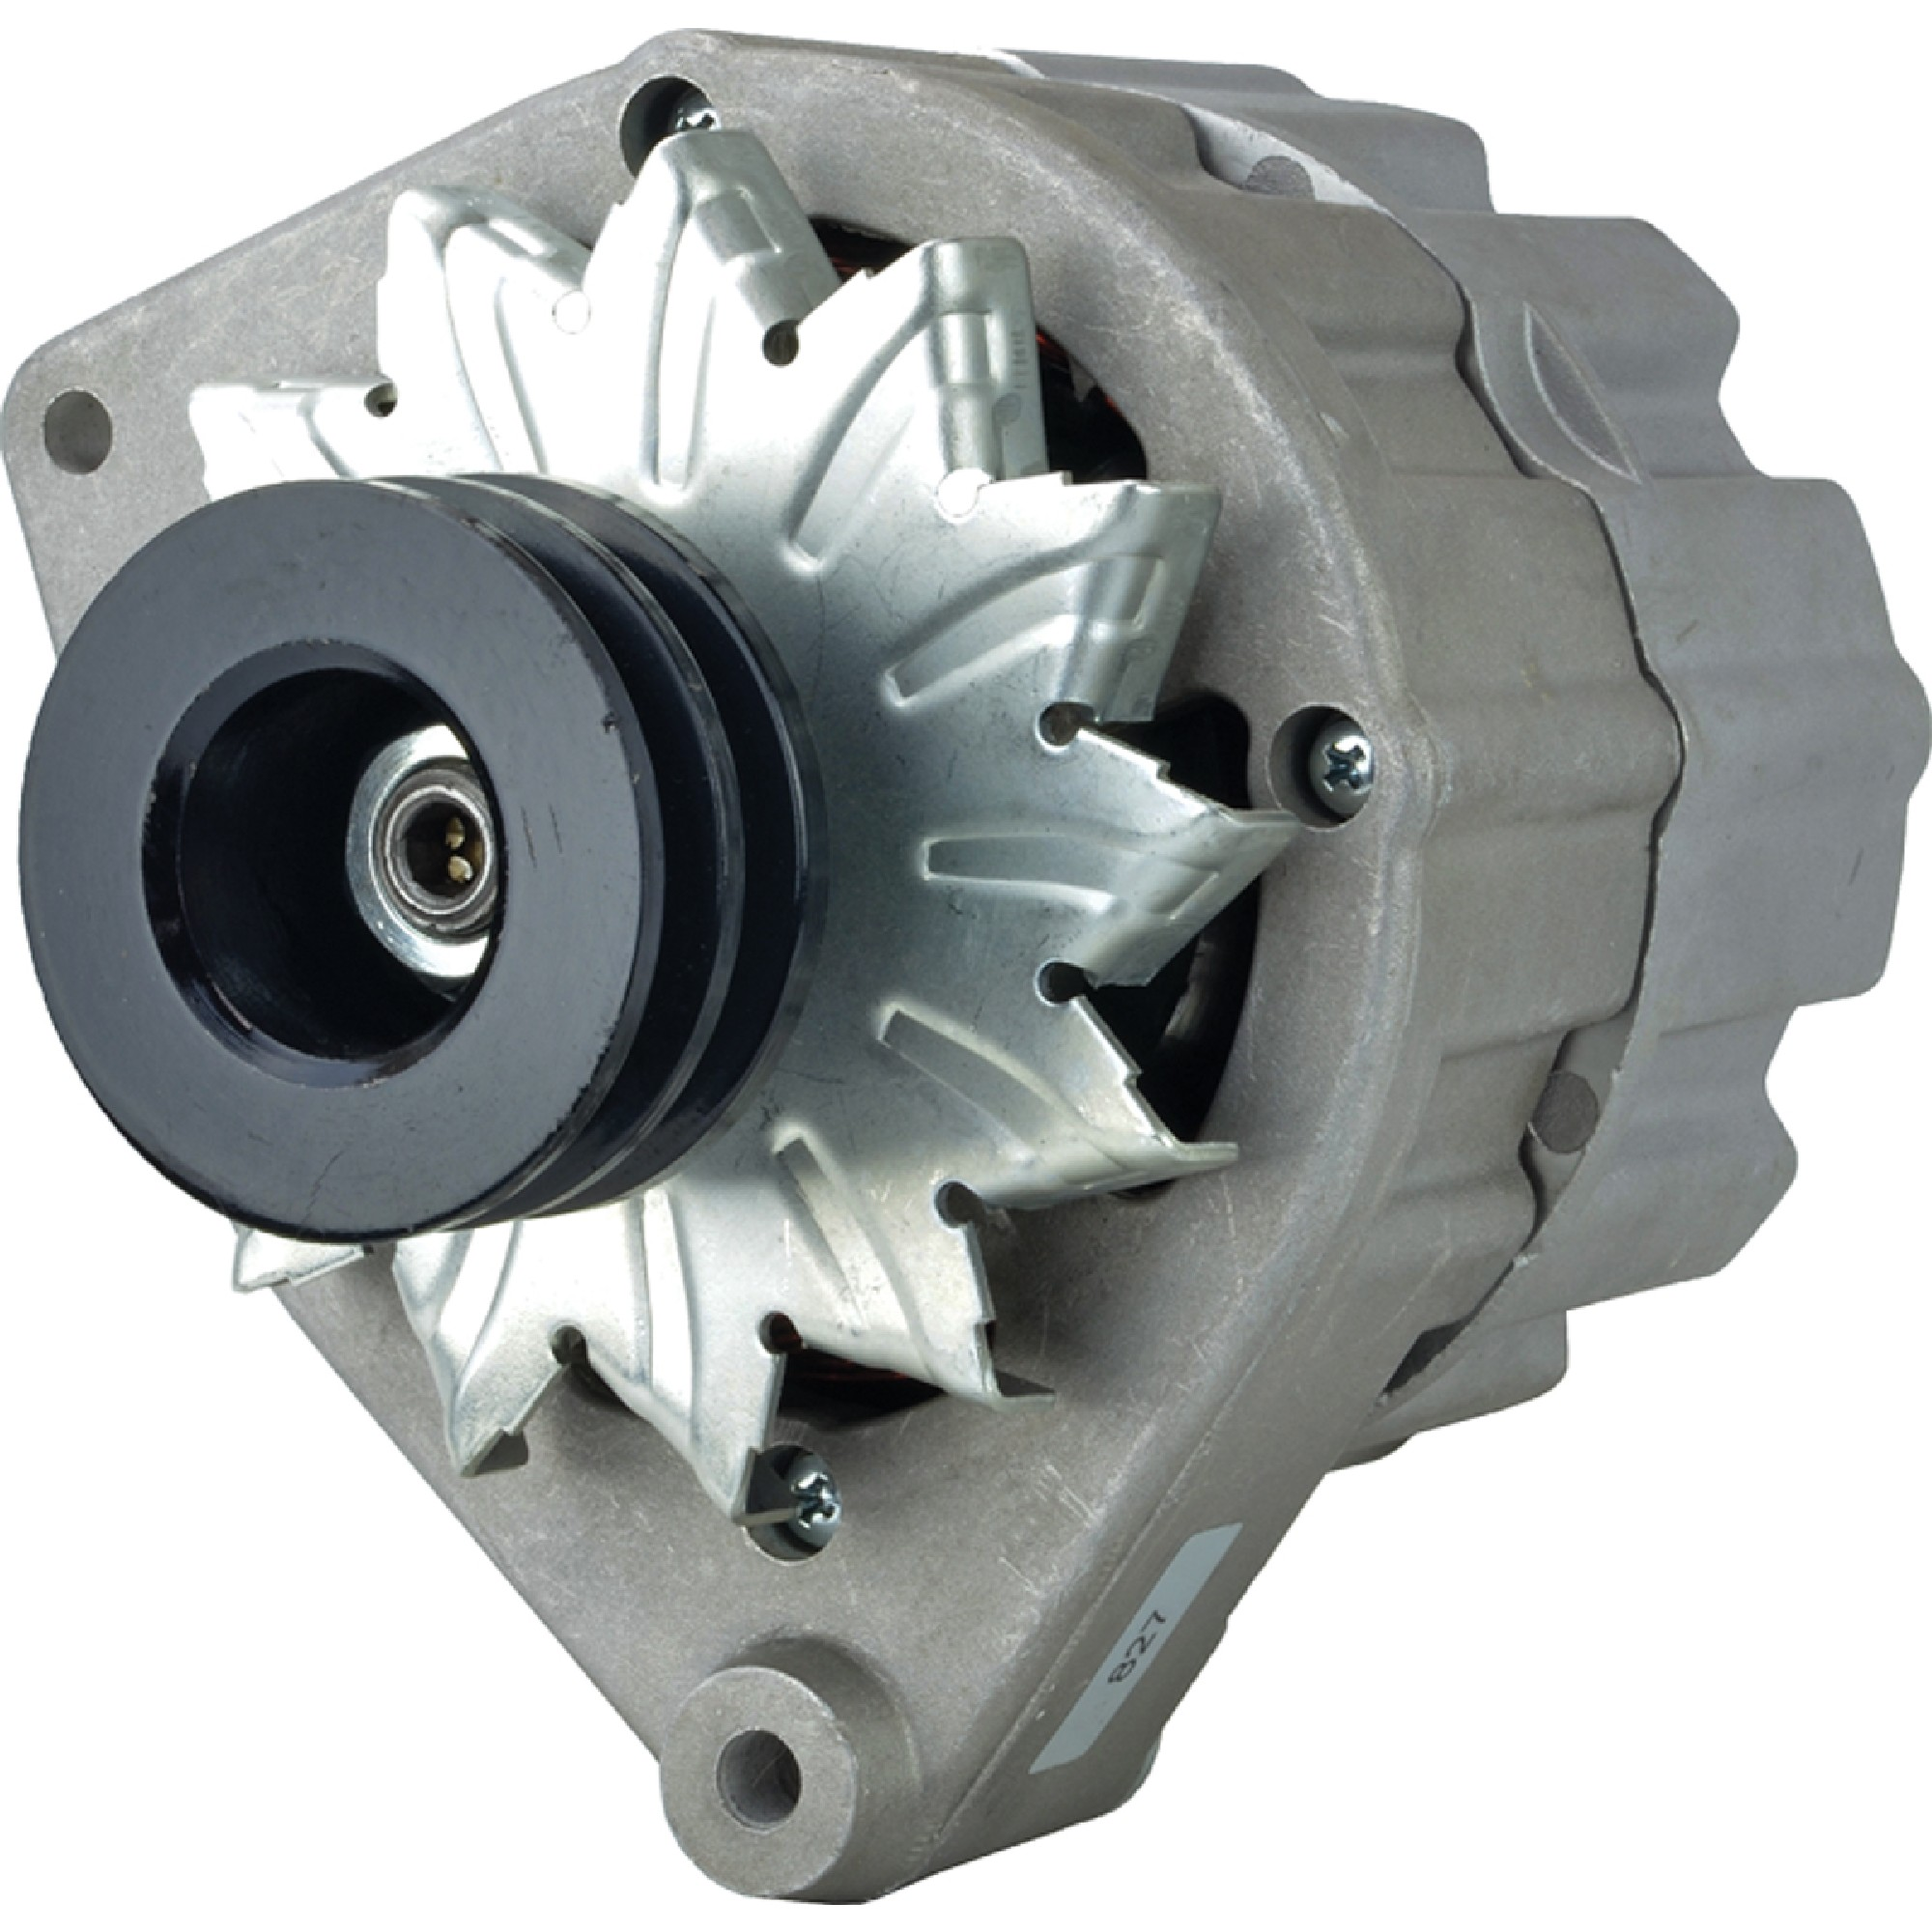 New Alternator For 22 0l 24v 220